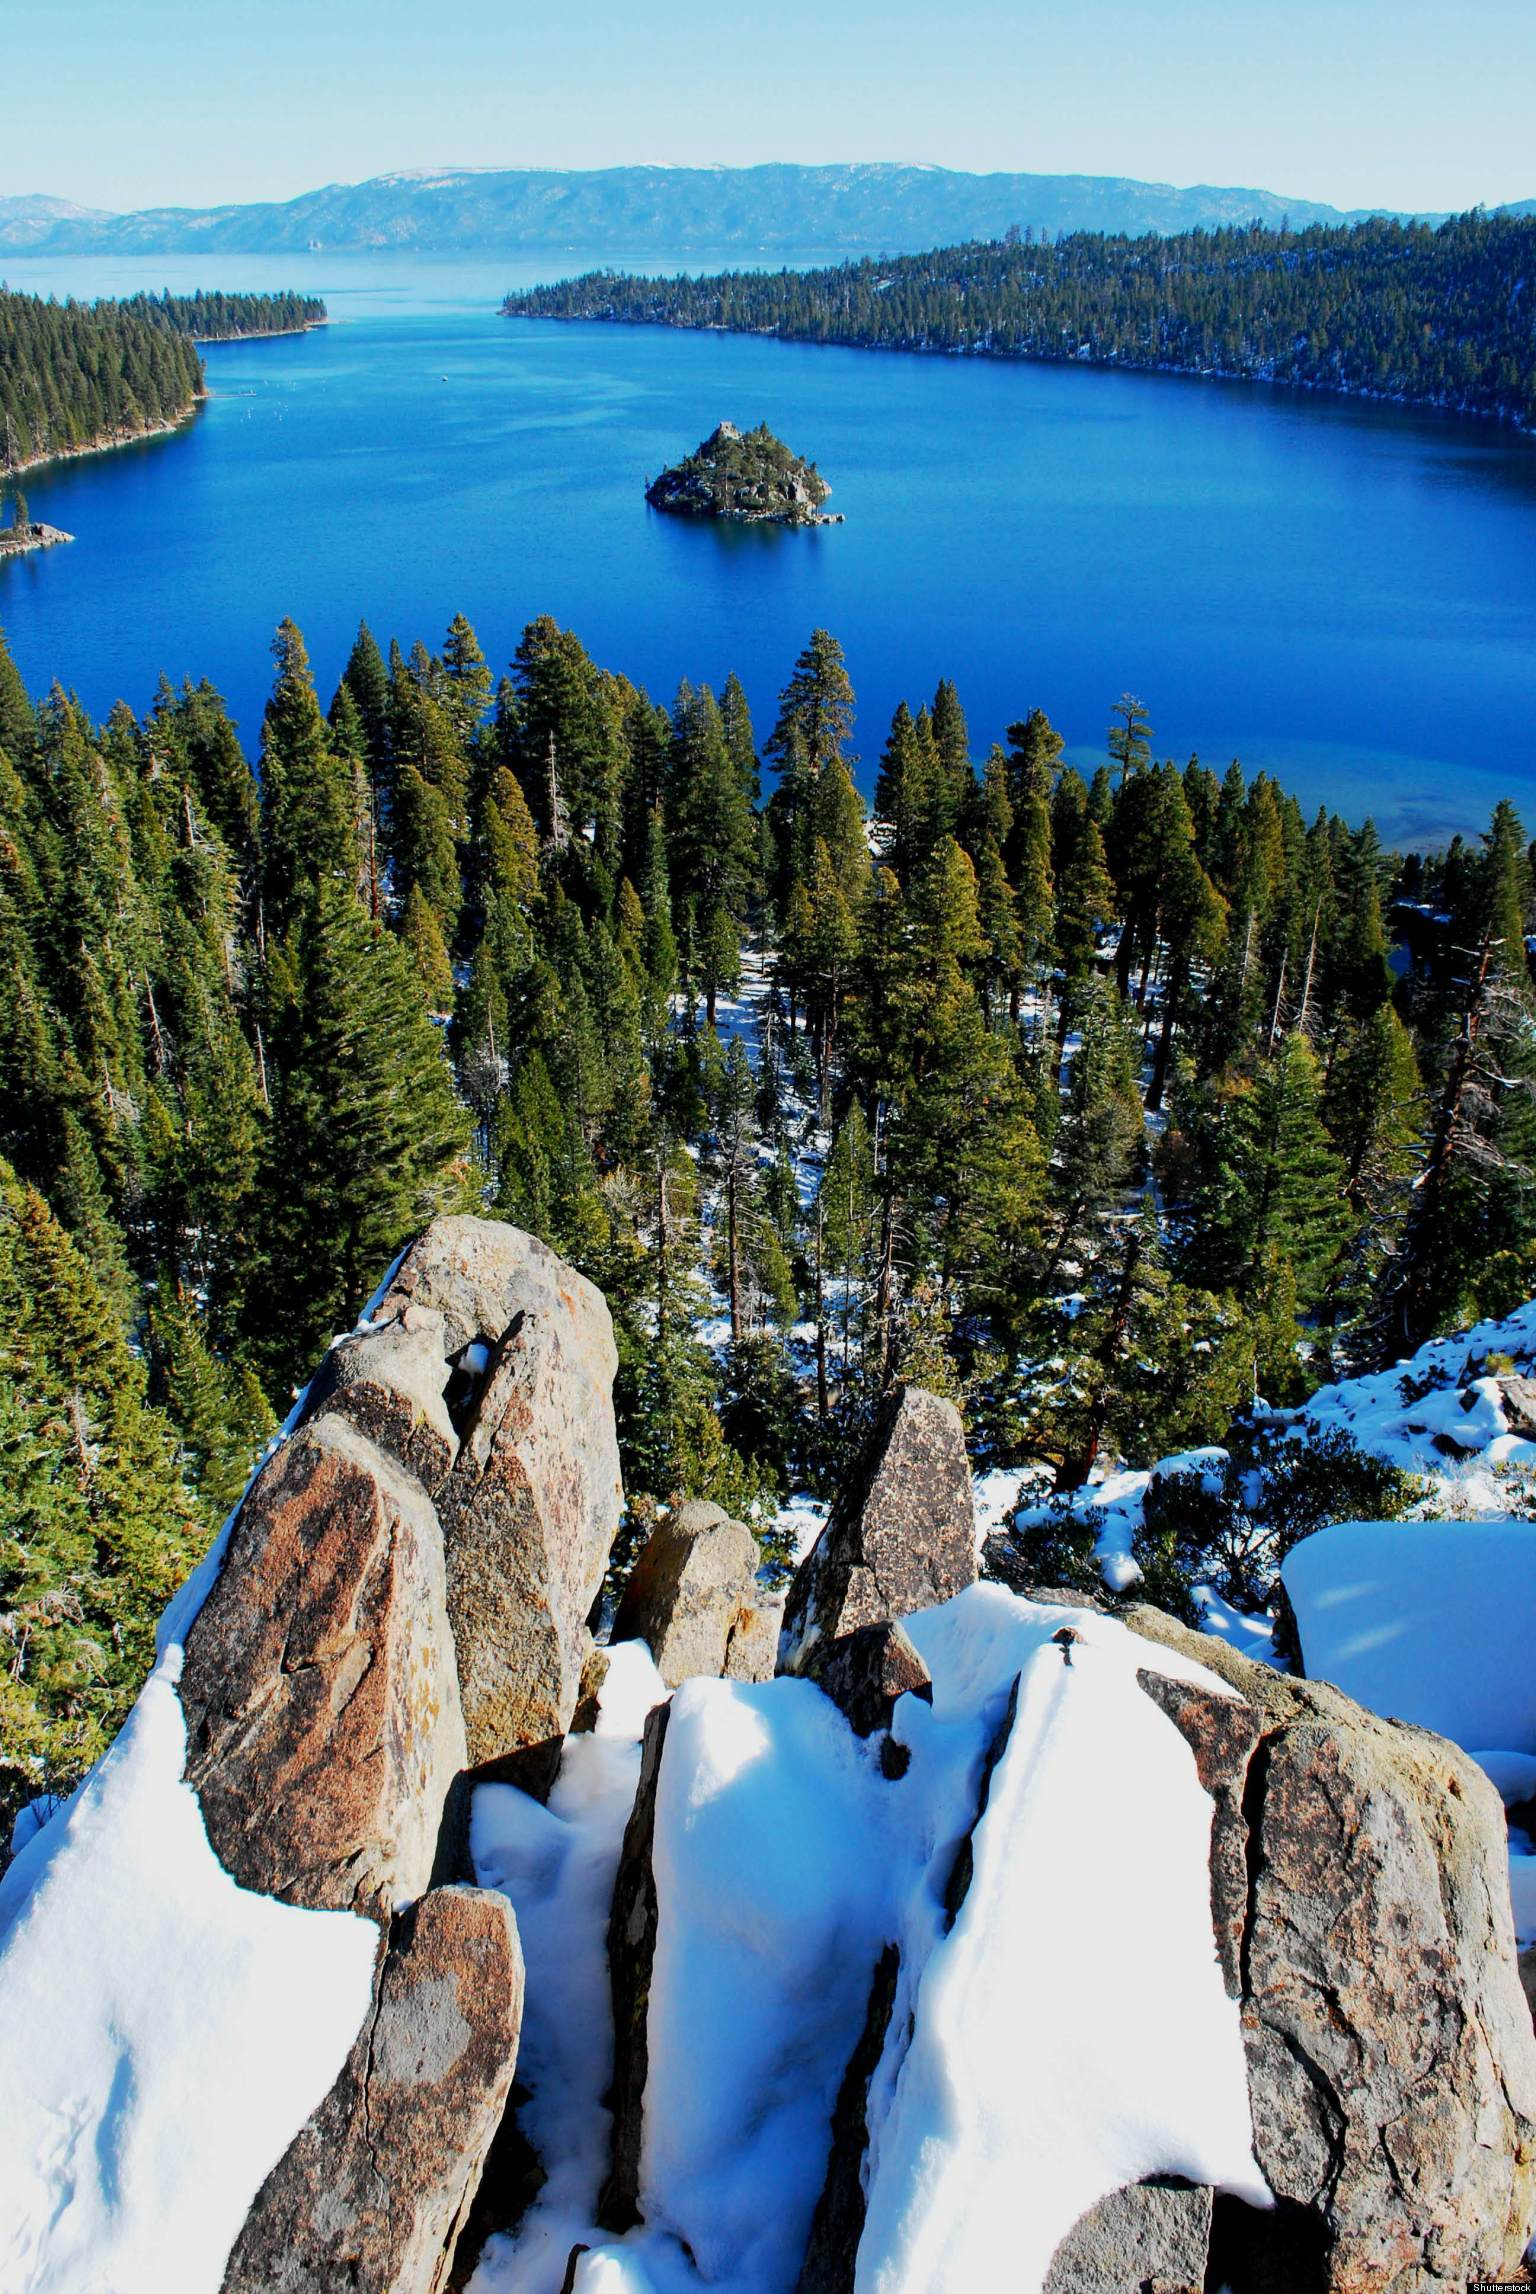 Lake Tahoe California Galaxy Note 3 Wallpapers Hd 1080x1920: In Lake Tahoe, Spring Snow Gives Way To Summer Adventure